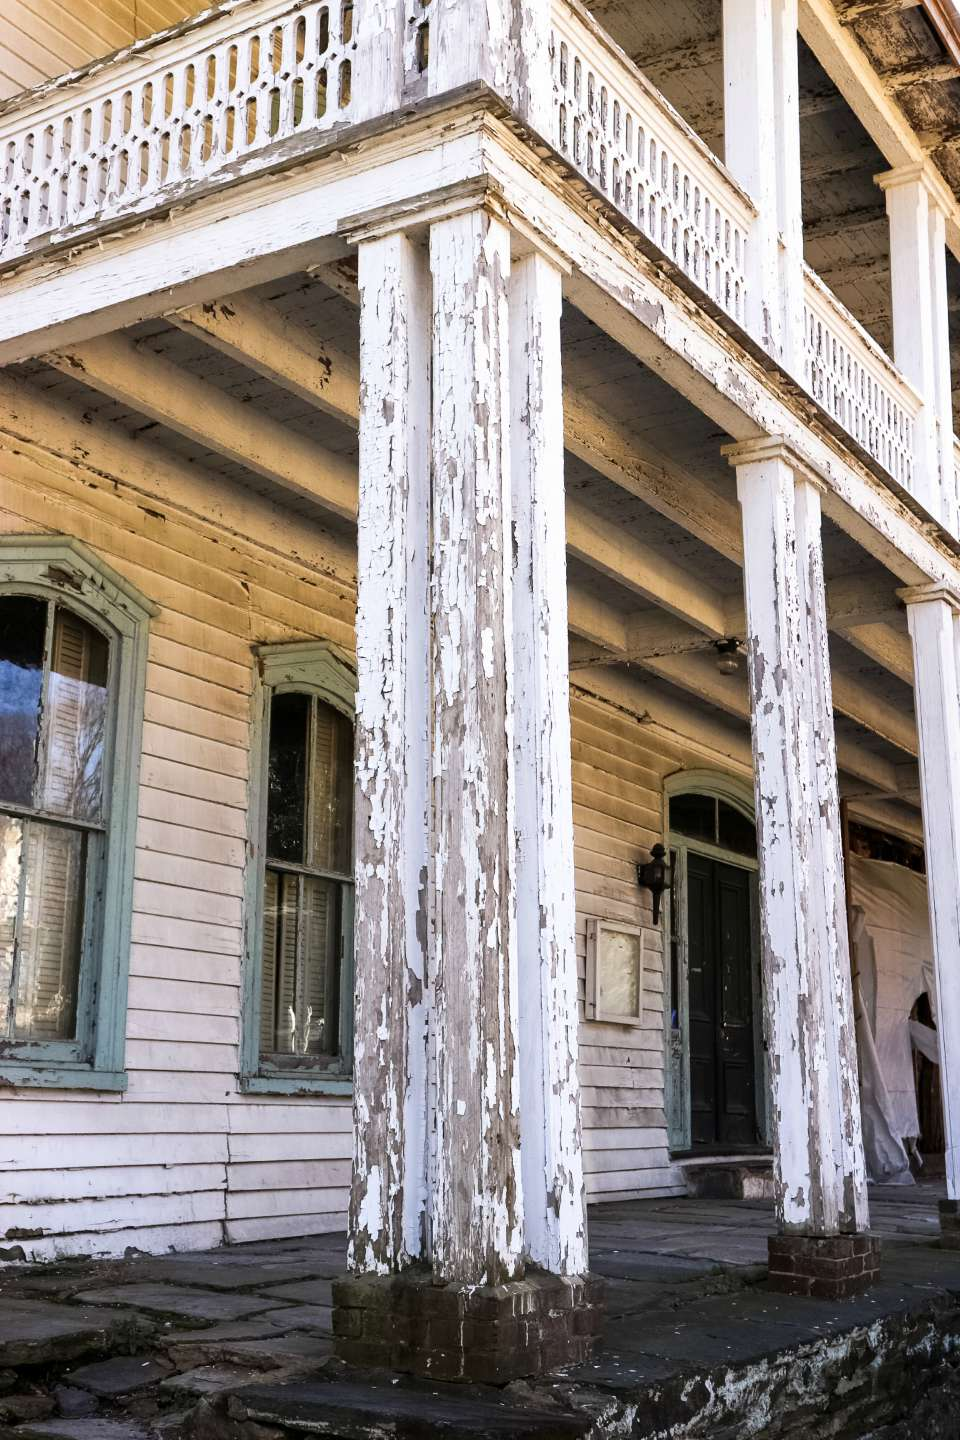 Places to Stay: The Colonial Inn in Hillsborough NC - I'm Fixin' To - @imfixintoblog |The Colonial Inn Hillsborough NC by popular NC travel blog, I'm Fixin' To: image of columns with peeling white paint.